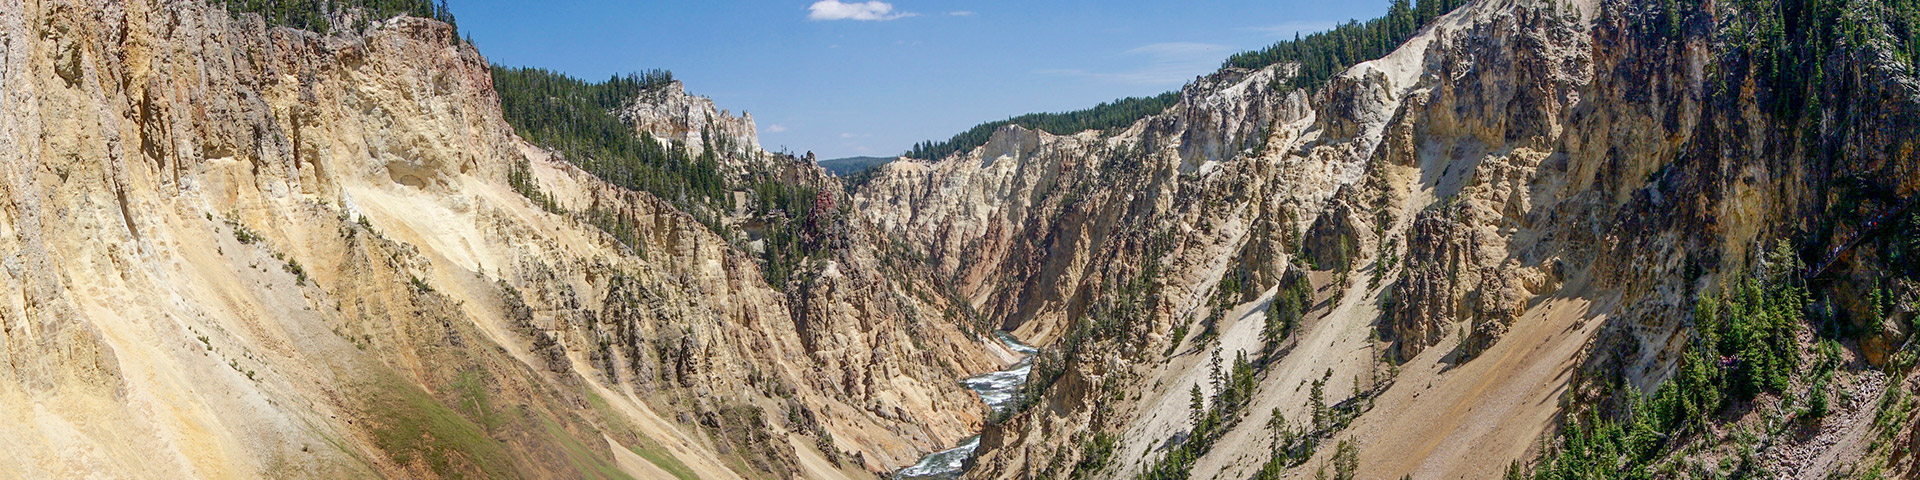 View of the Brink of the Lower Falls Hike in Yellowstone National Park